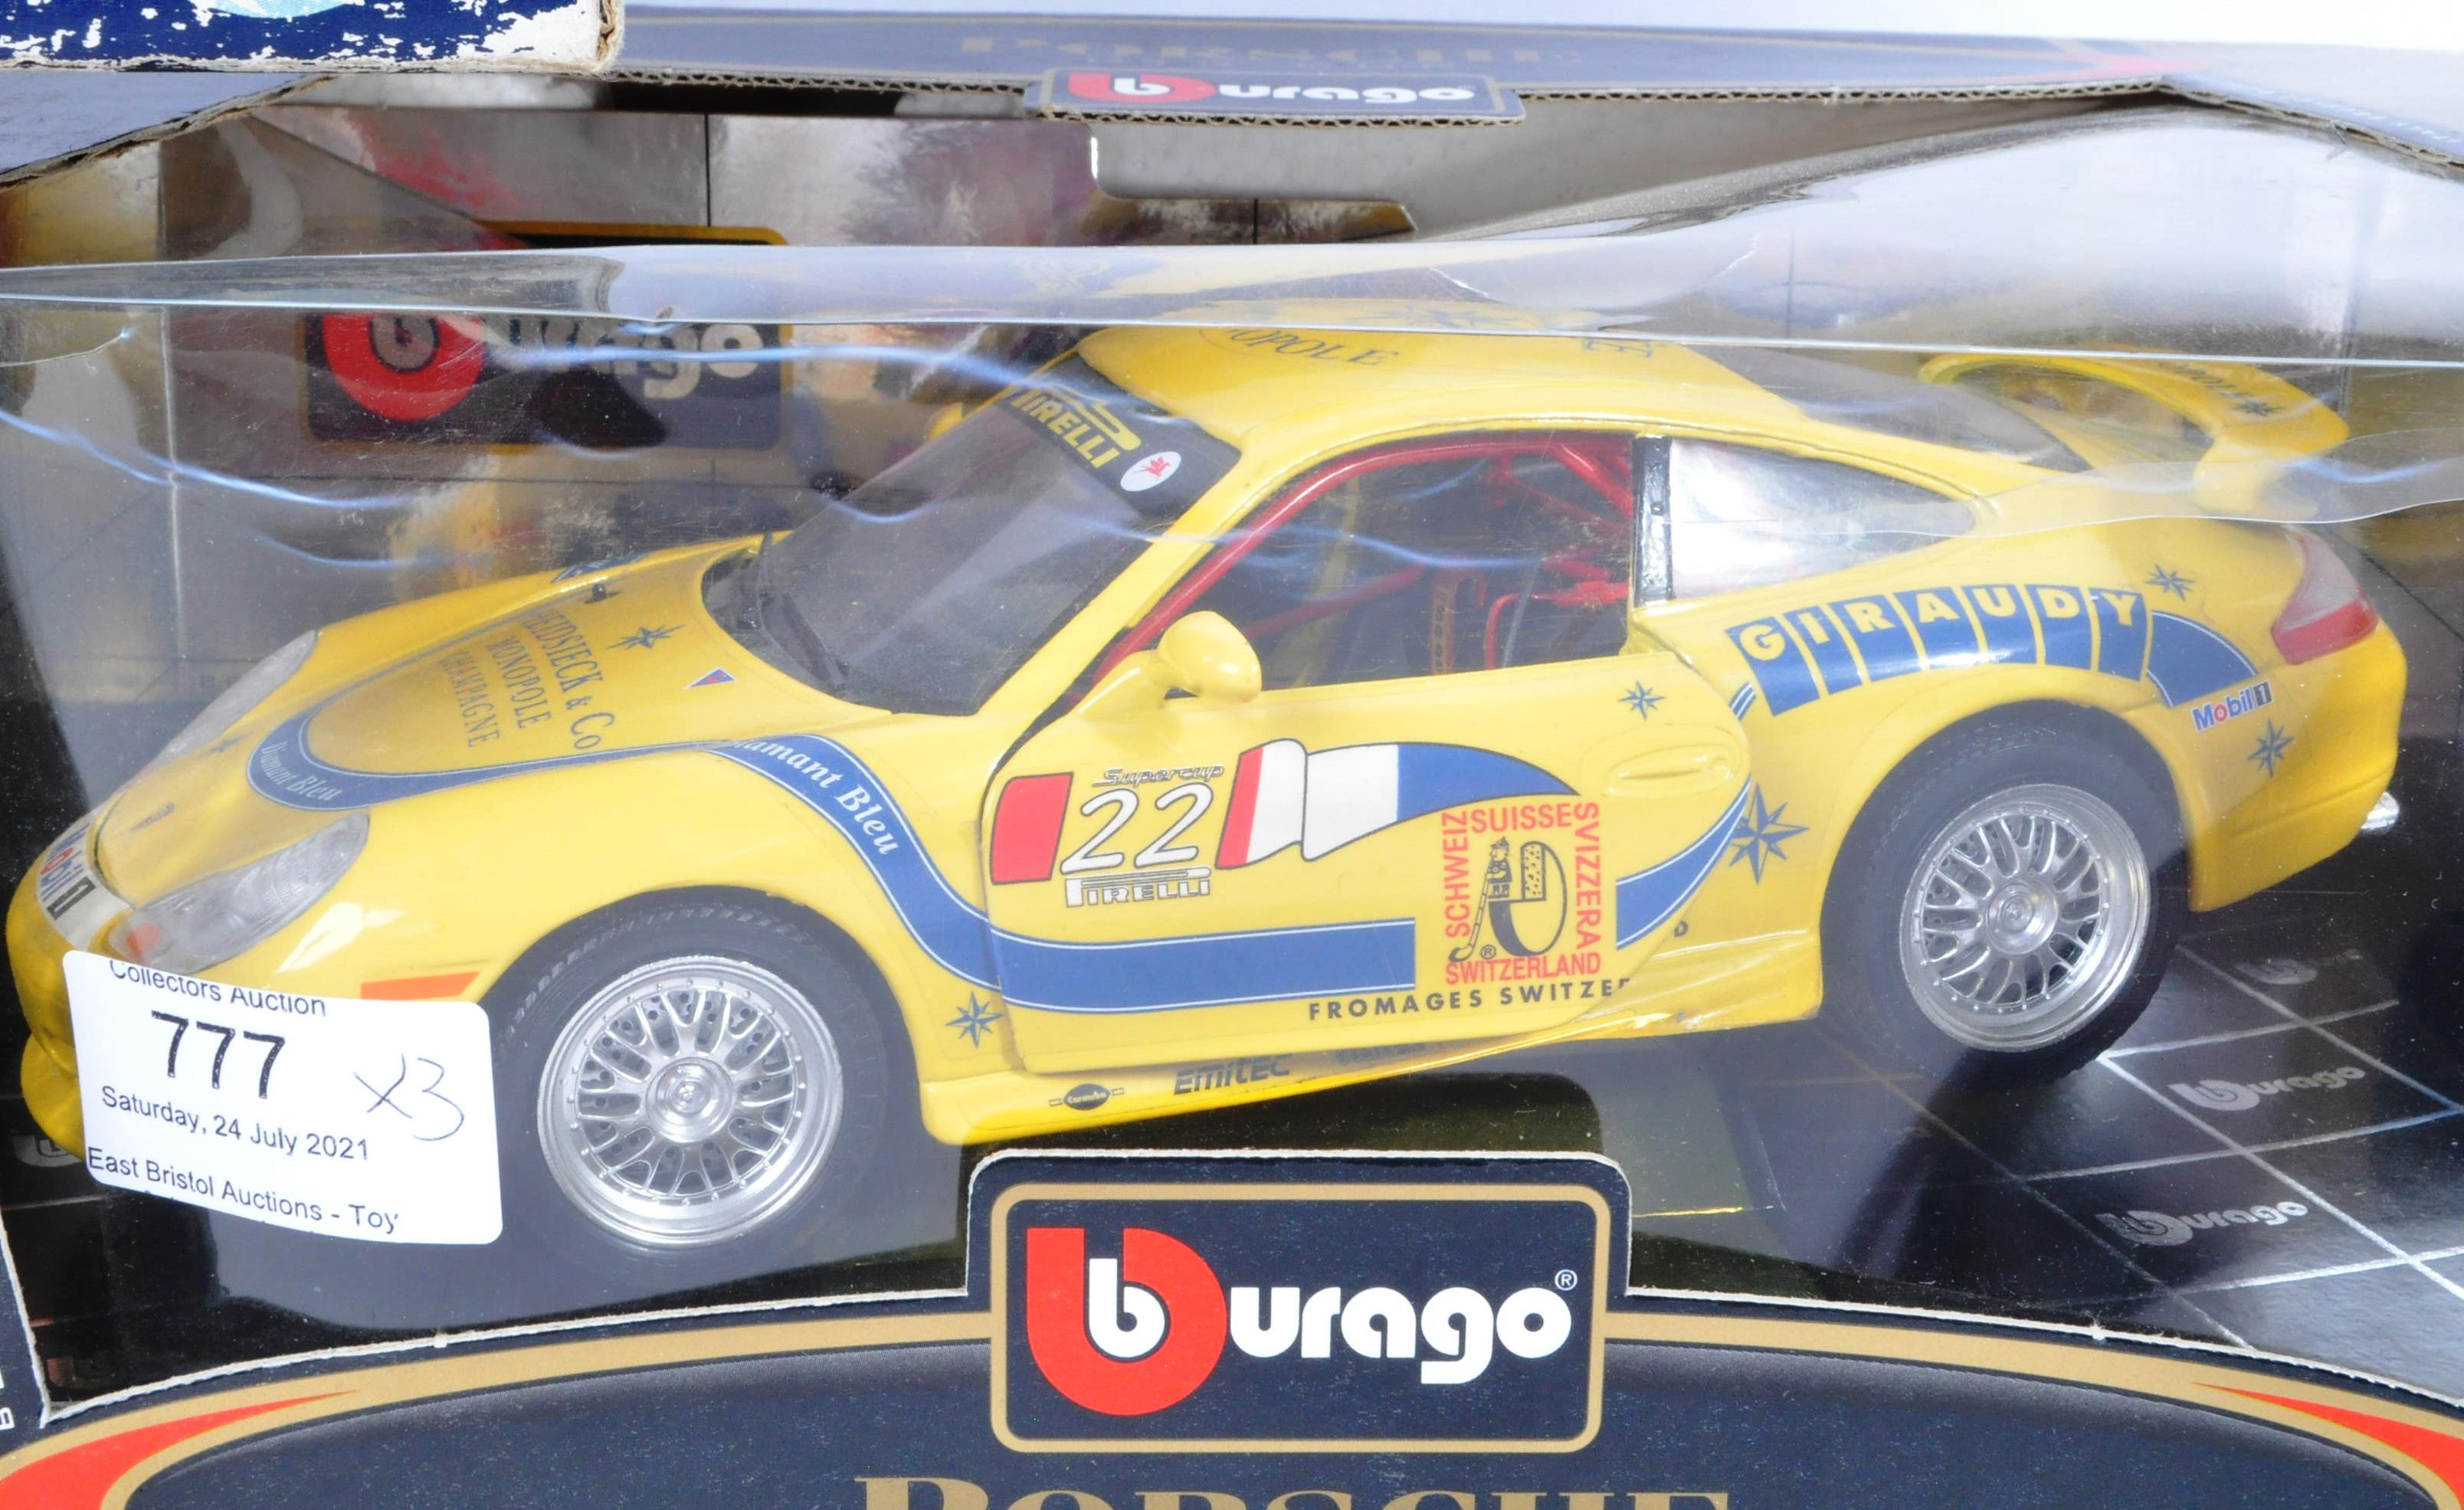 DIECAST - LARGE SCALE BOXED DIECAST MODELS 1/18 AND 1/24 - Image 5 of 5